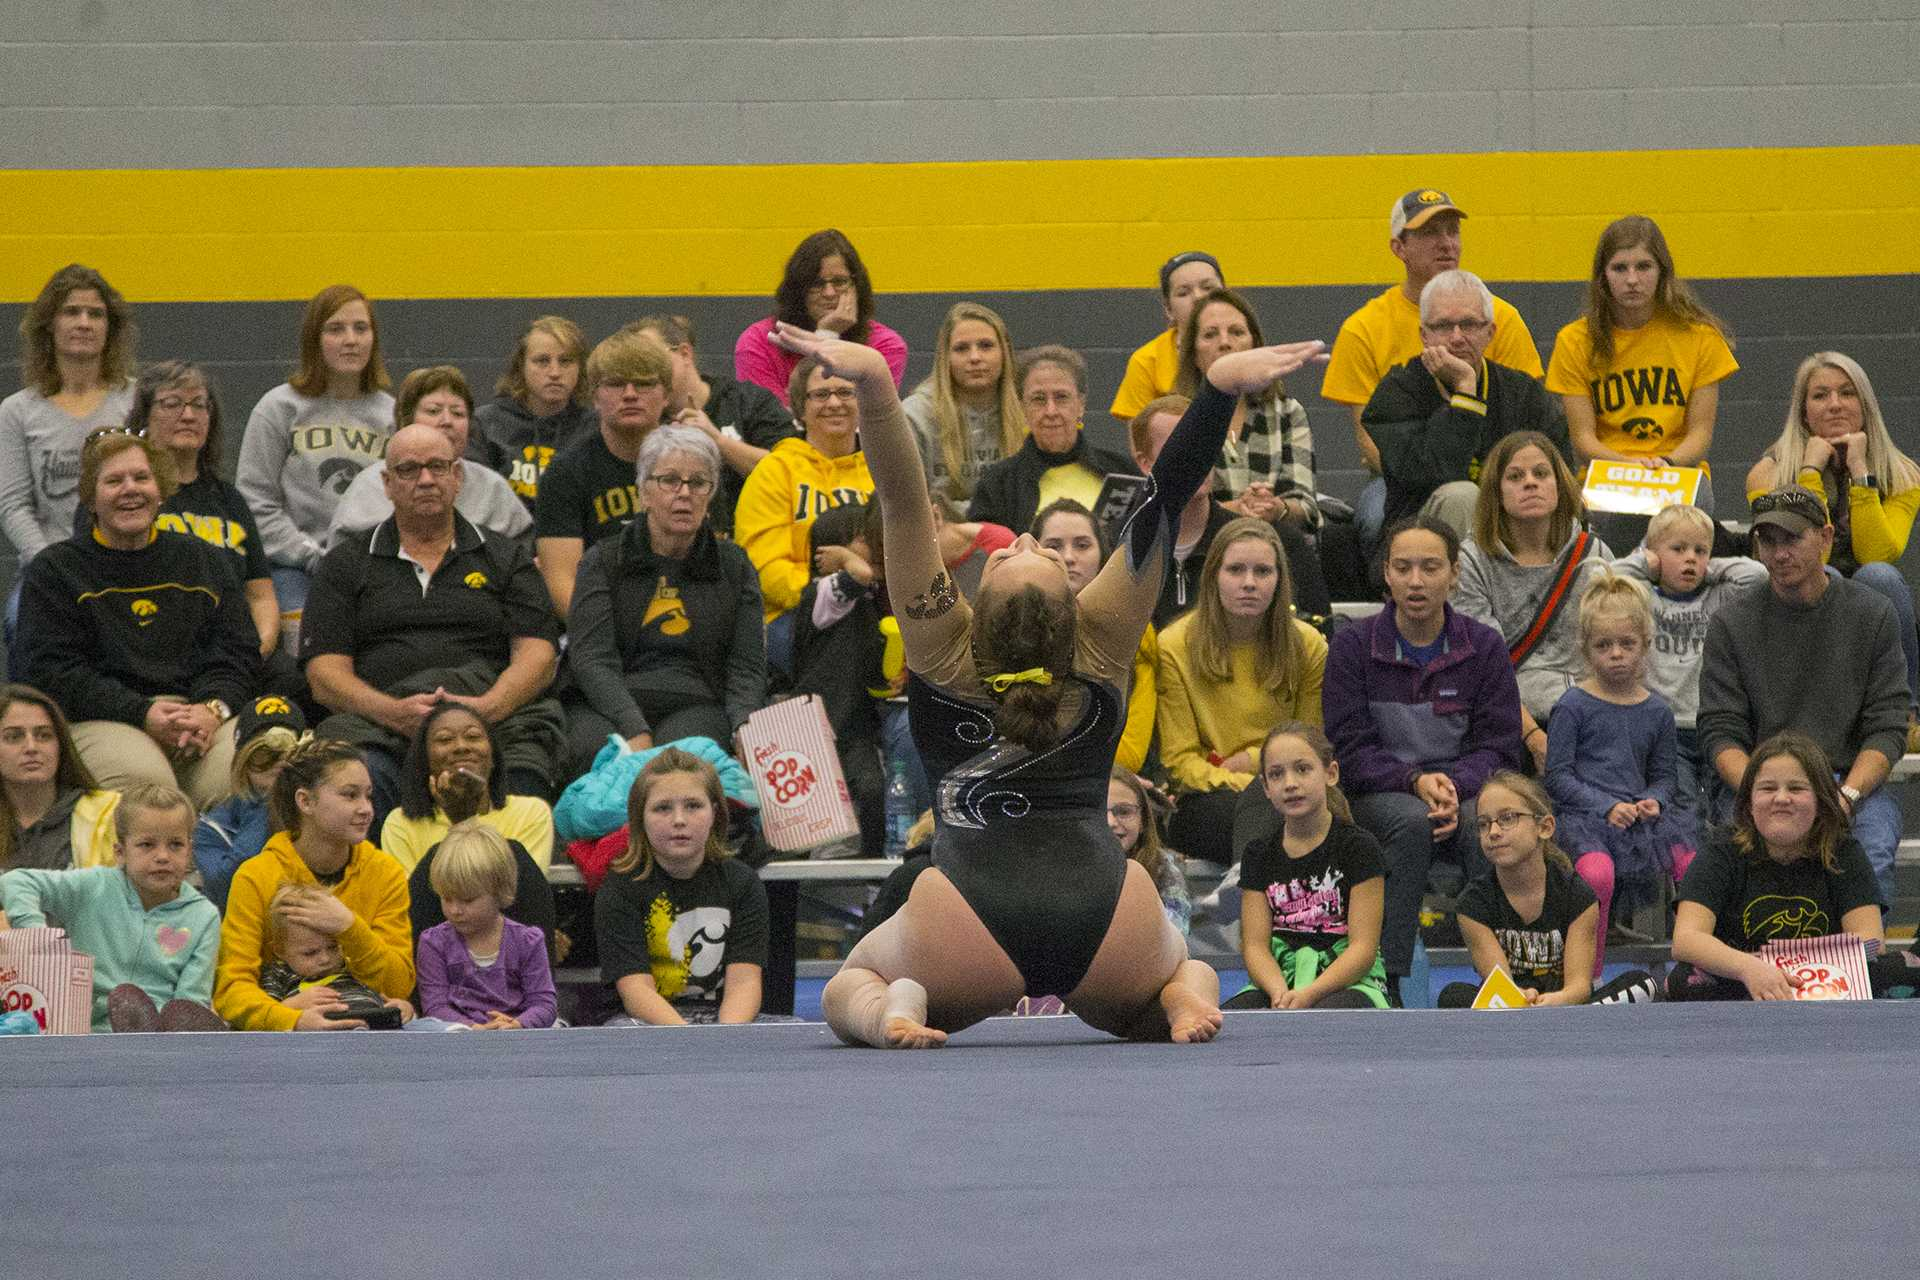 Iowa sophomore Breanna Fitzke performs on the floor during the Black and Gold Intrasquad meet at the Field House on Saturday, Dec. 2, 2017.  The Gold team defeated the Black team, 13-7. (Lily Smith/The Daily Iowan)